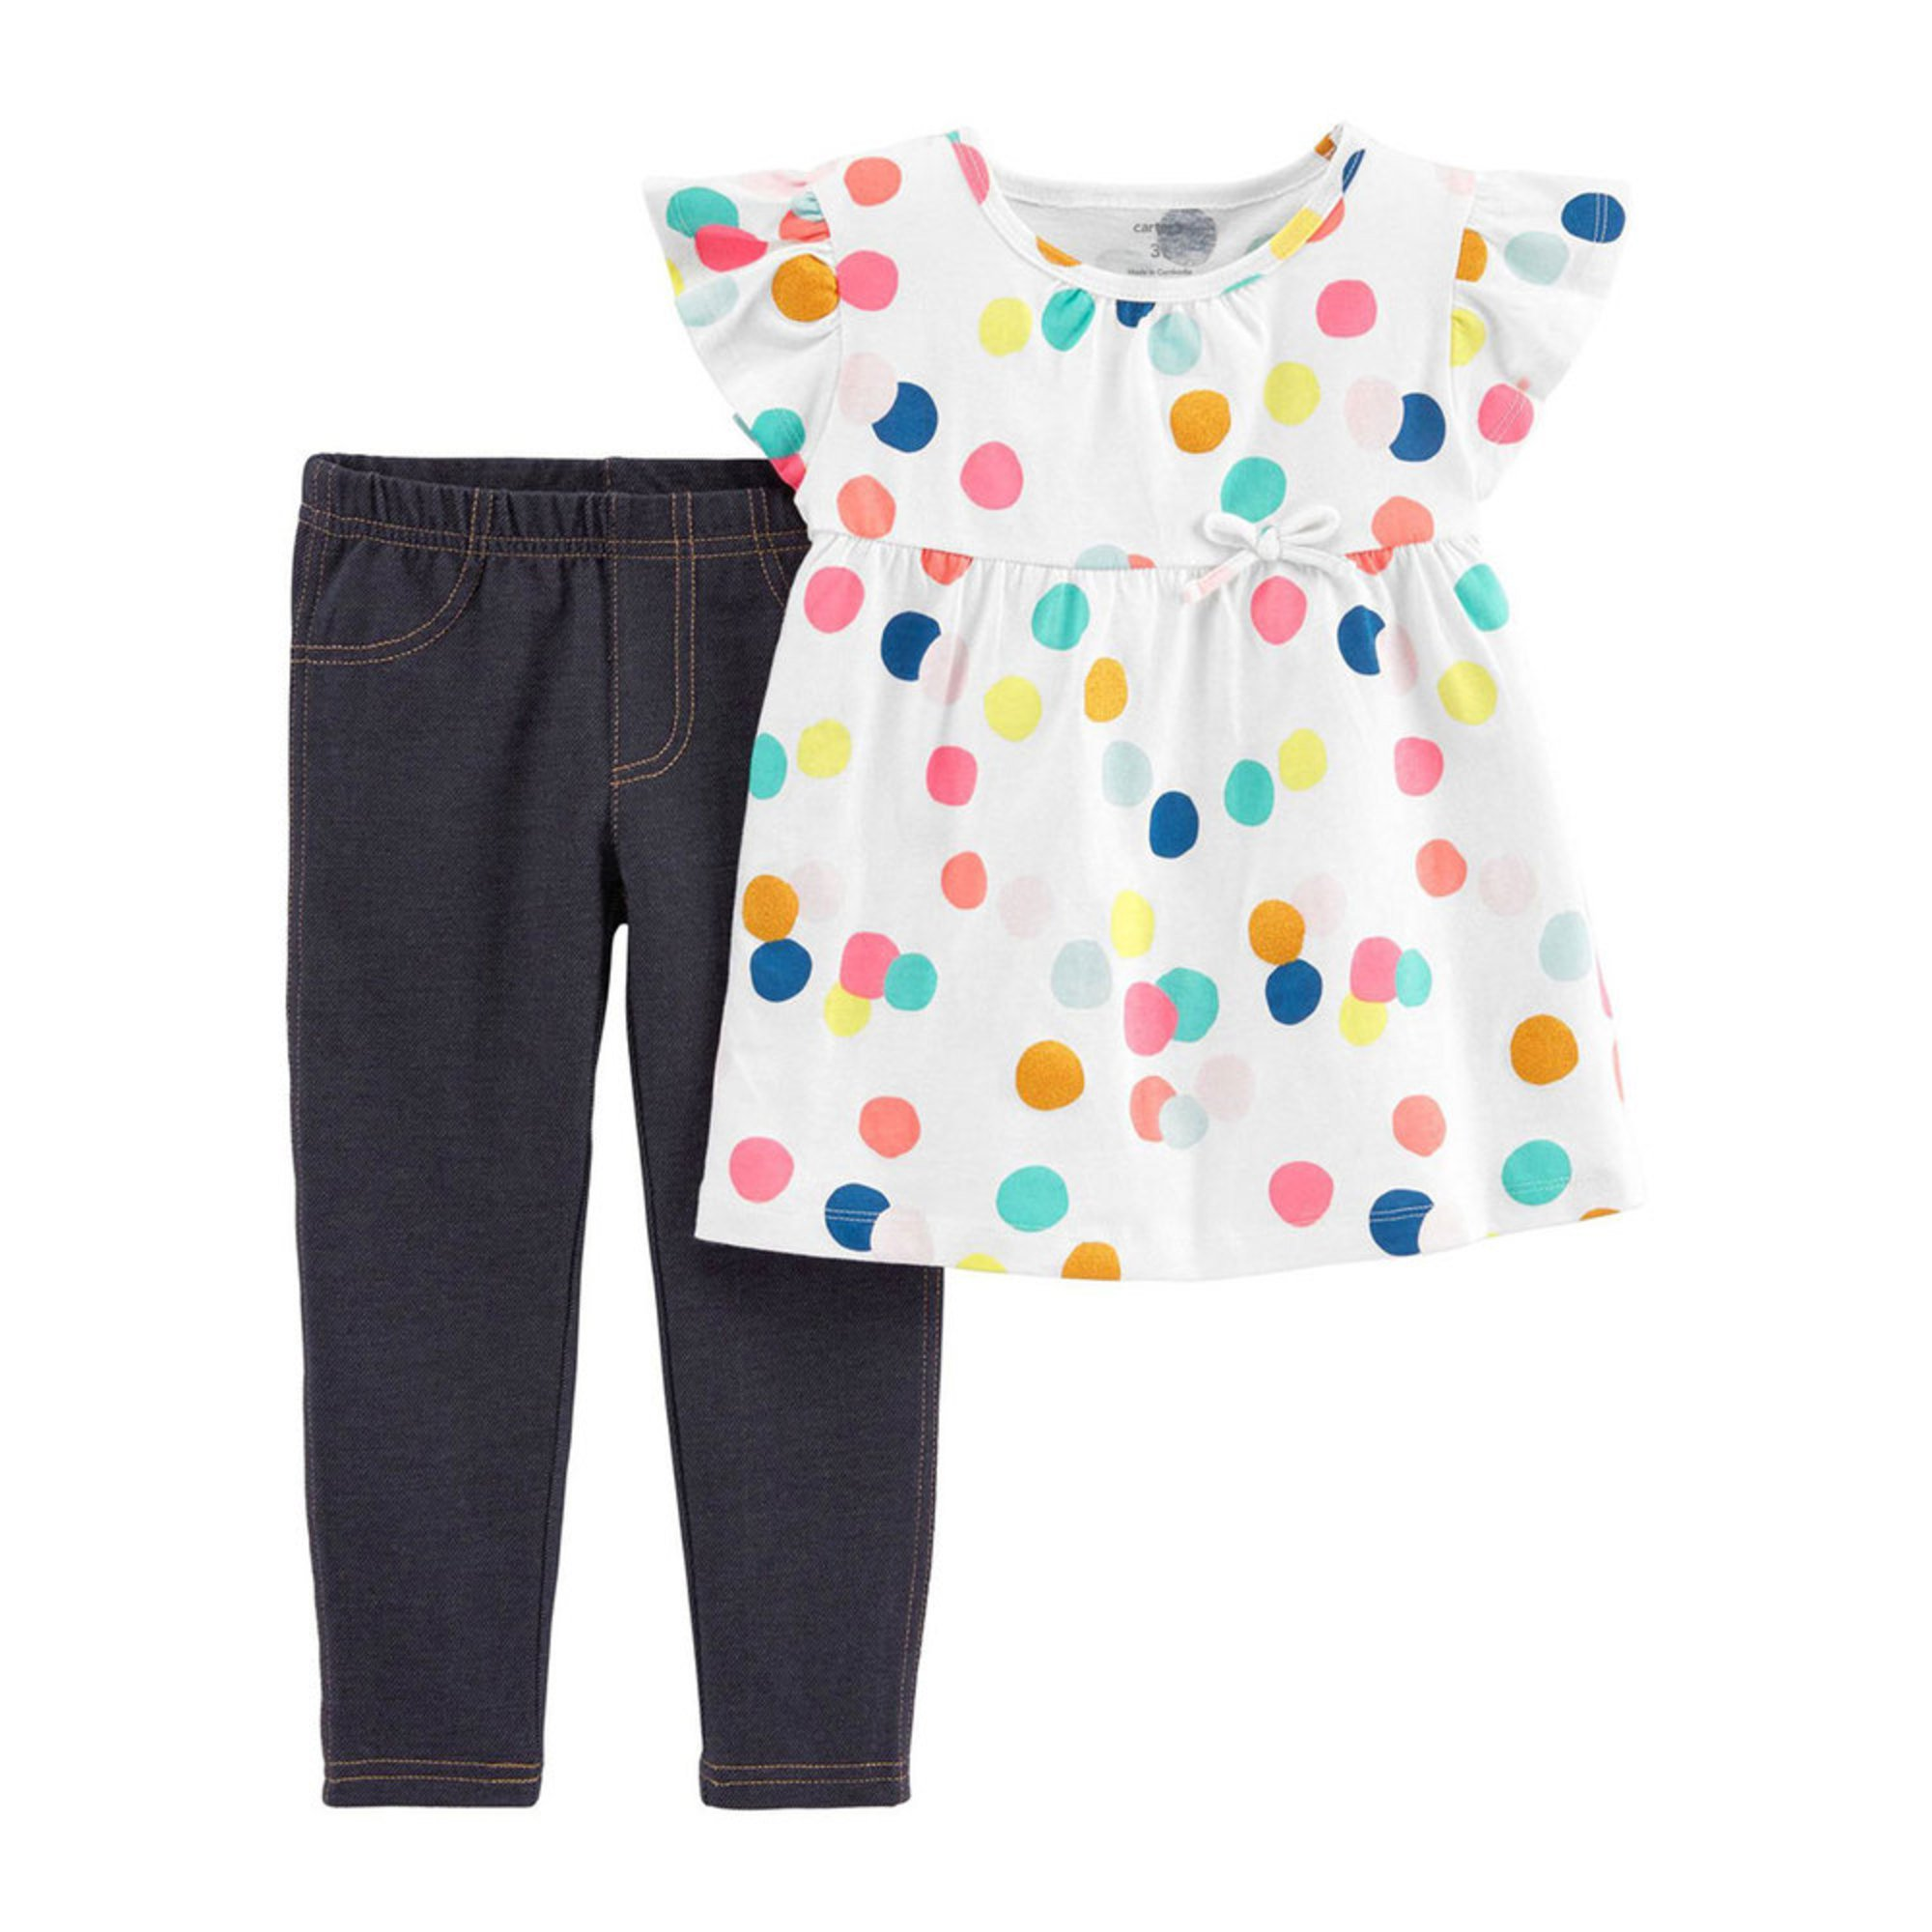 387c705f34eff2 Carter's Baby Girls' 2-piece Polka Dot Top And Jegging Set   Baby ...